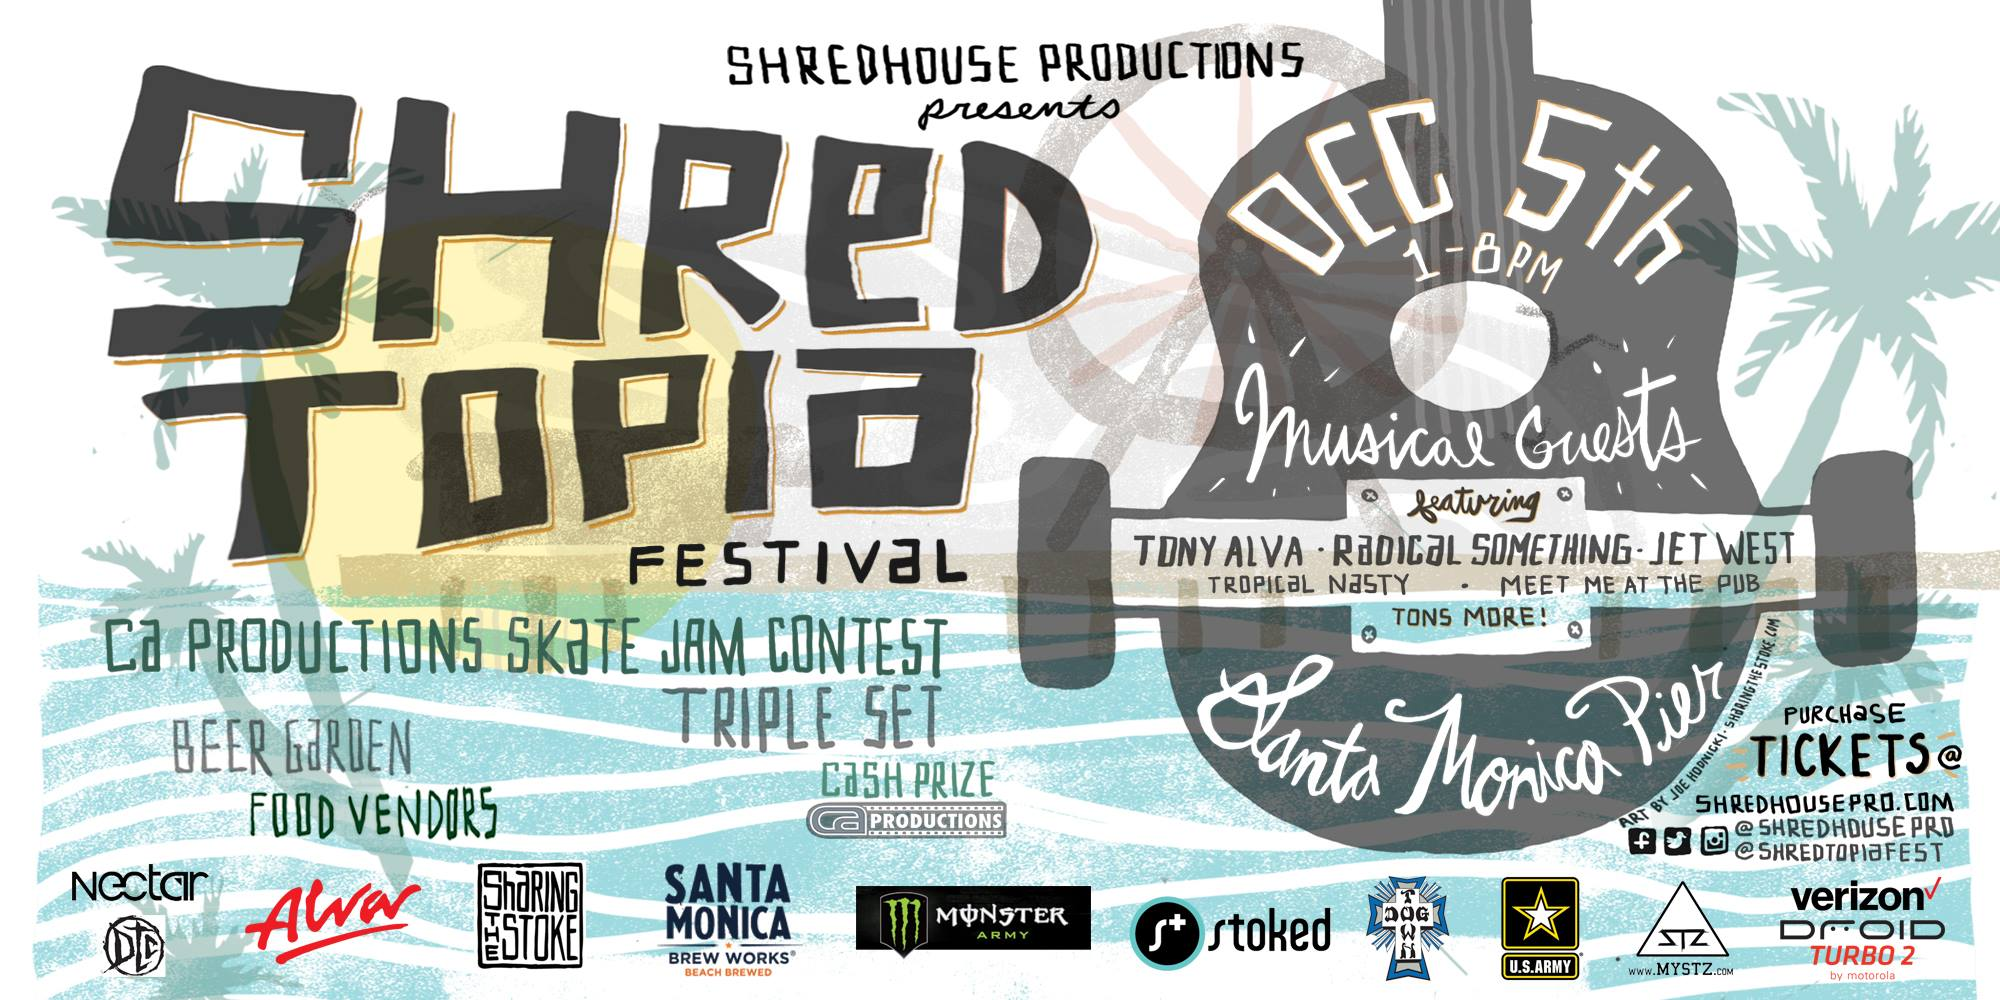 shredtopia flyer